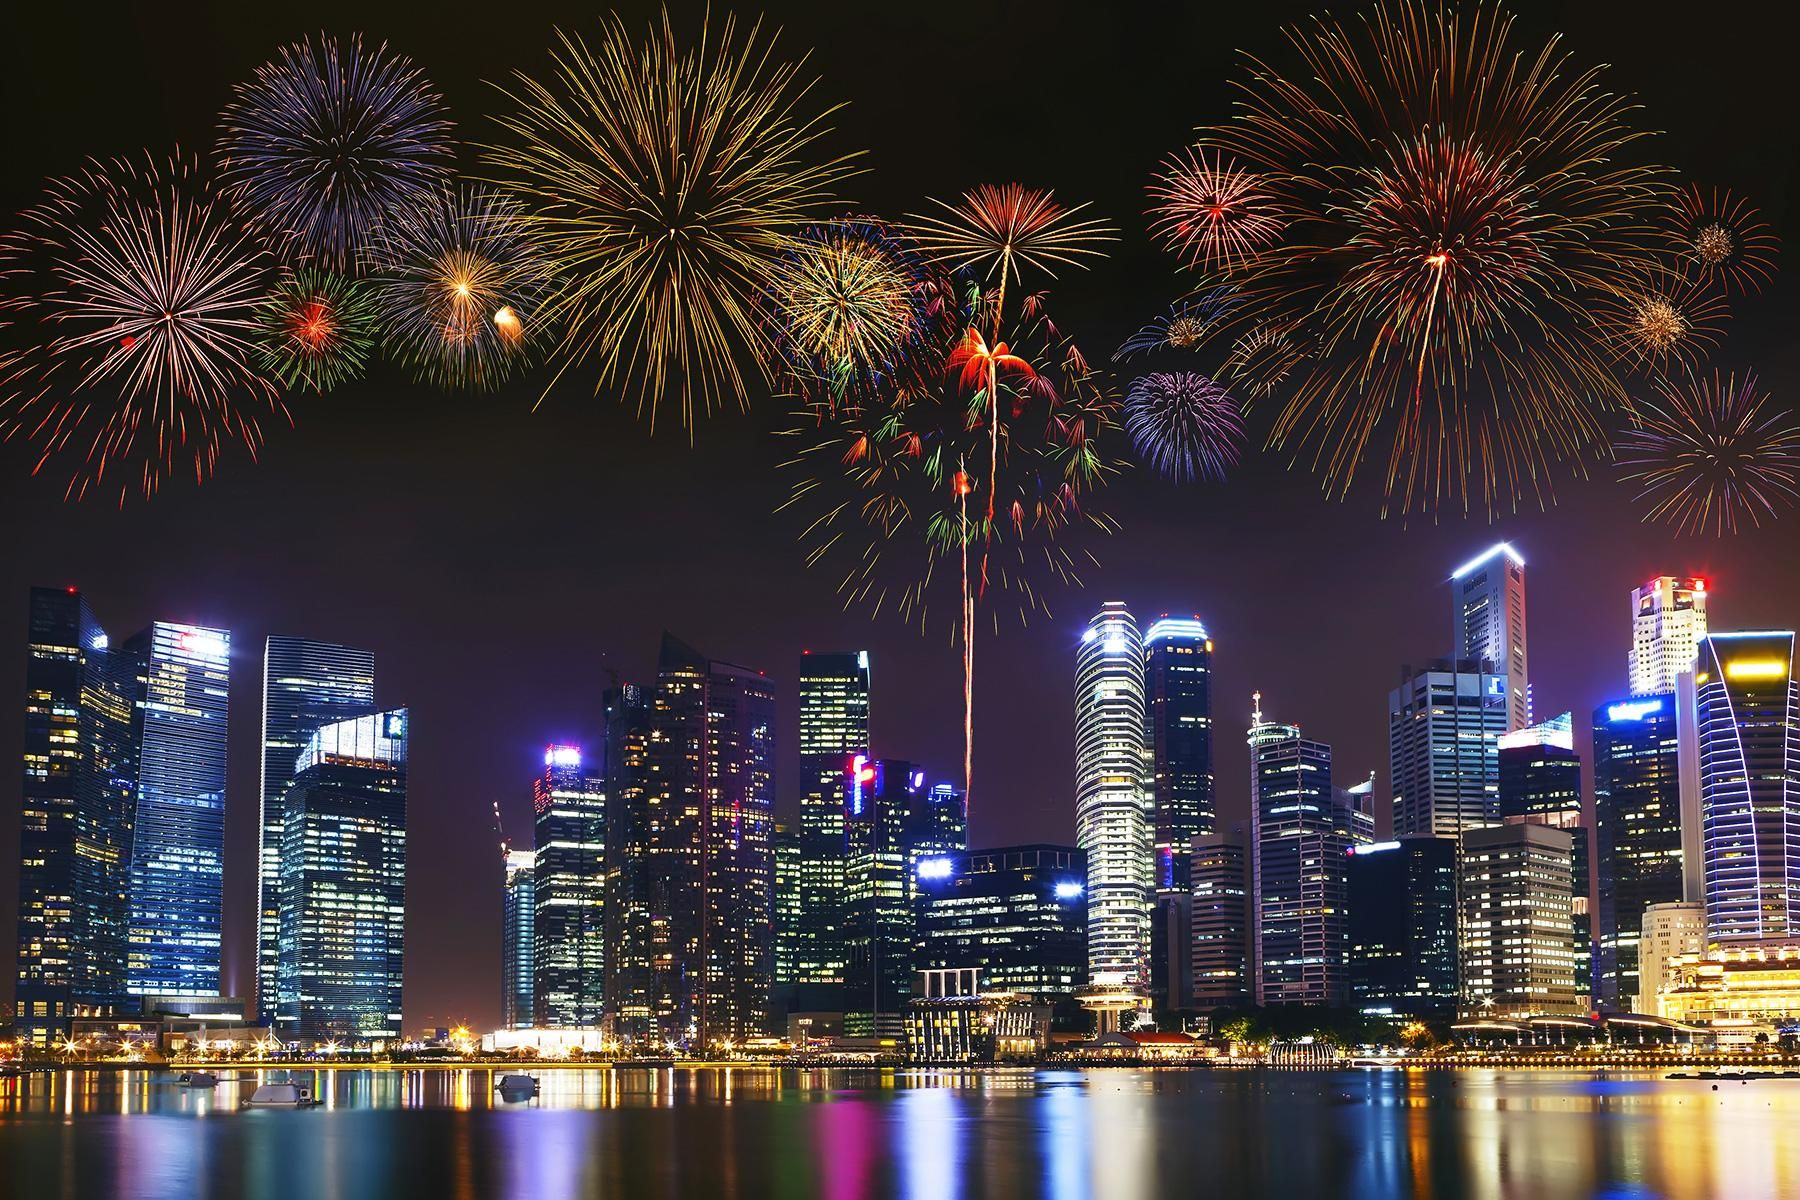 The World S 10 Best New Year S Eve Firework Shows New York New Years Eve New Year Fireworks Fireworks Show